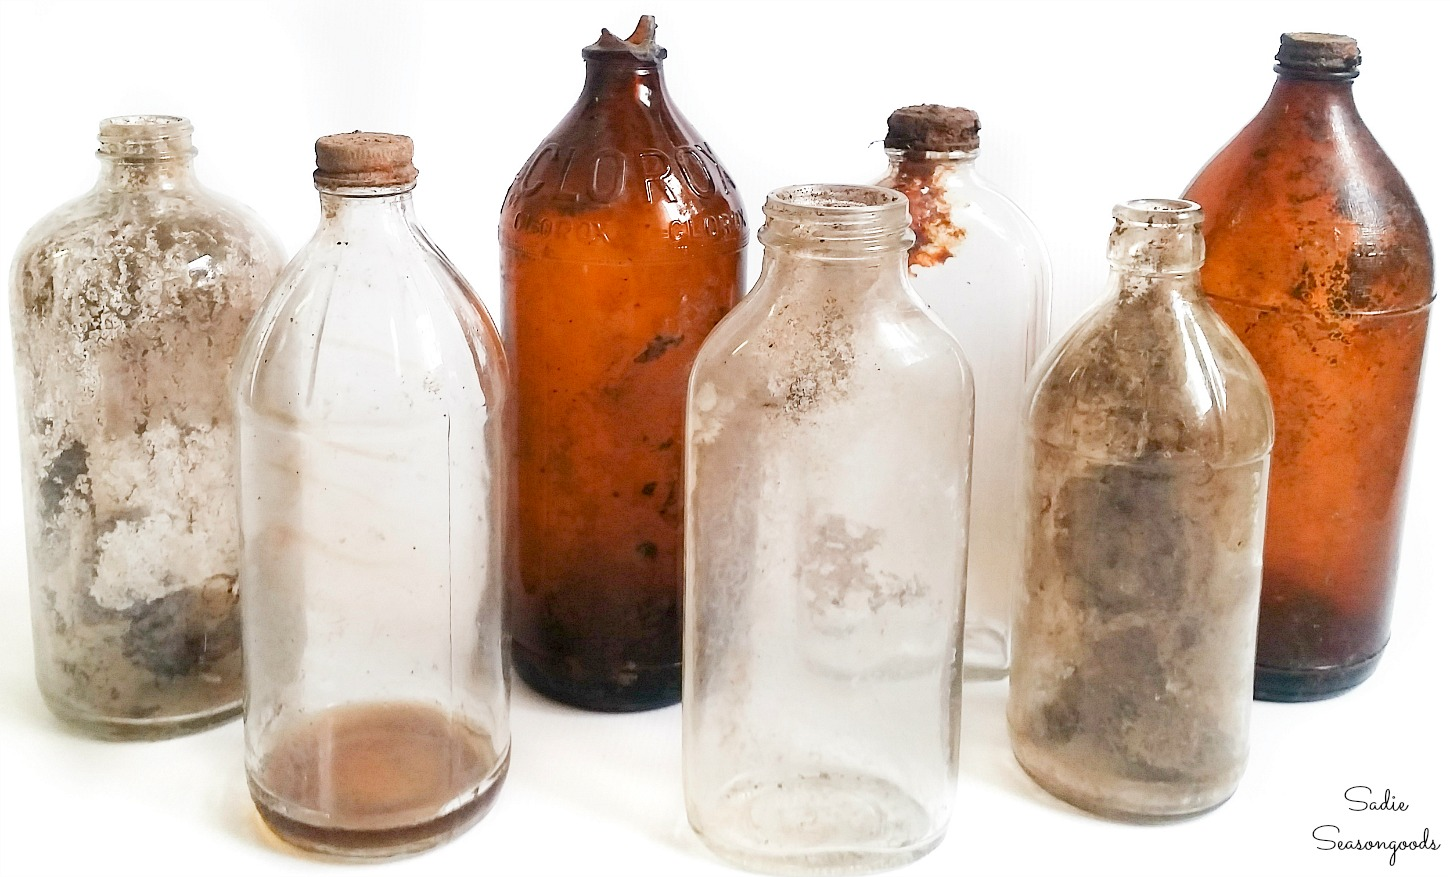 Old glass bottles from bottle digging to be used as Halloween poison bottles